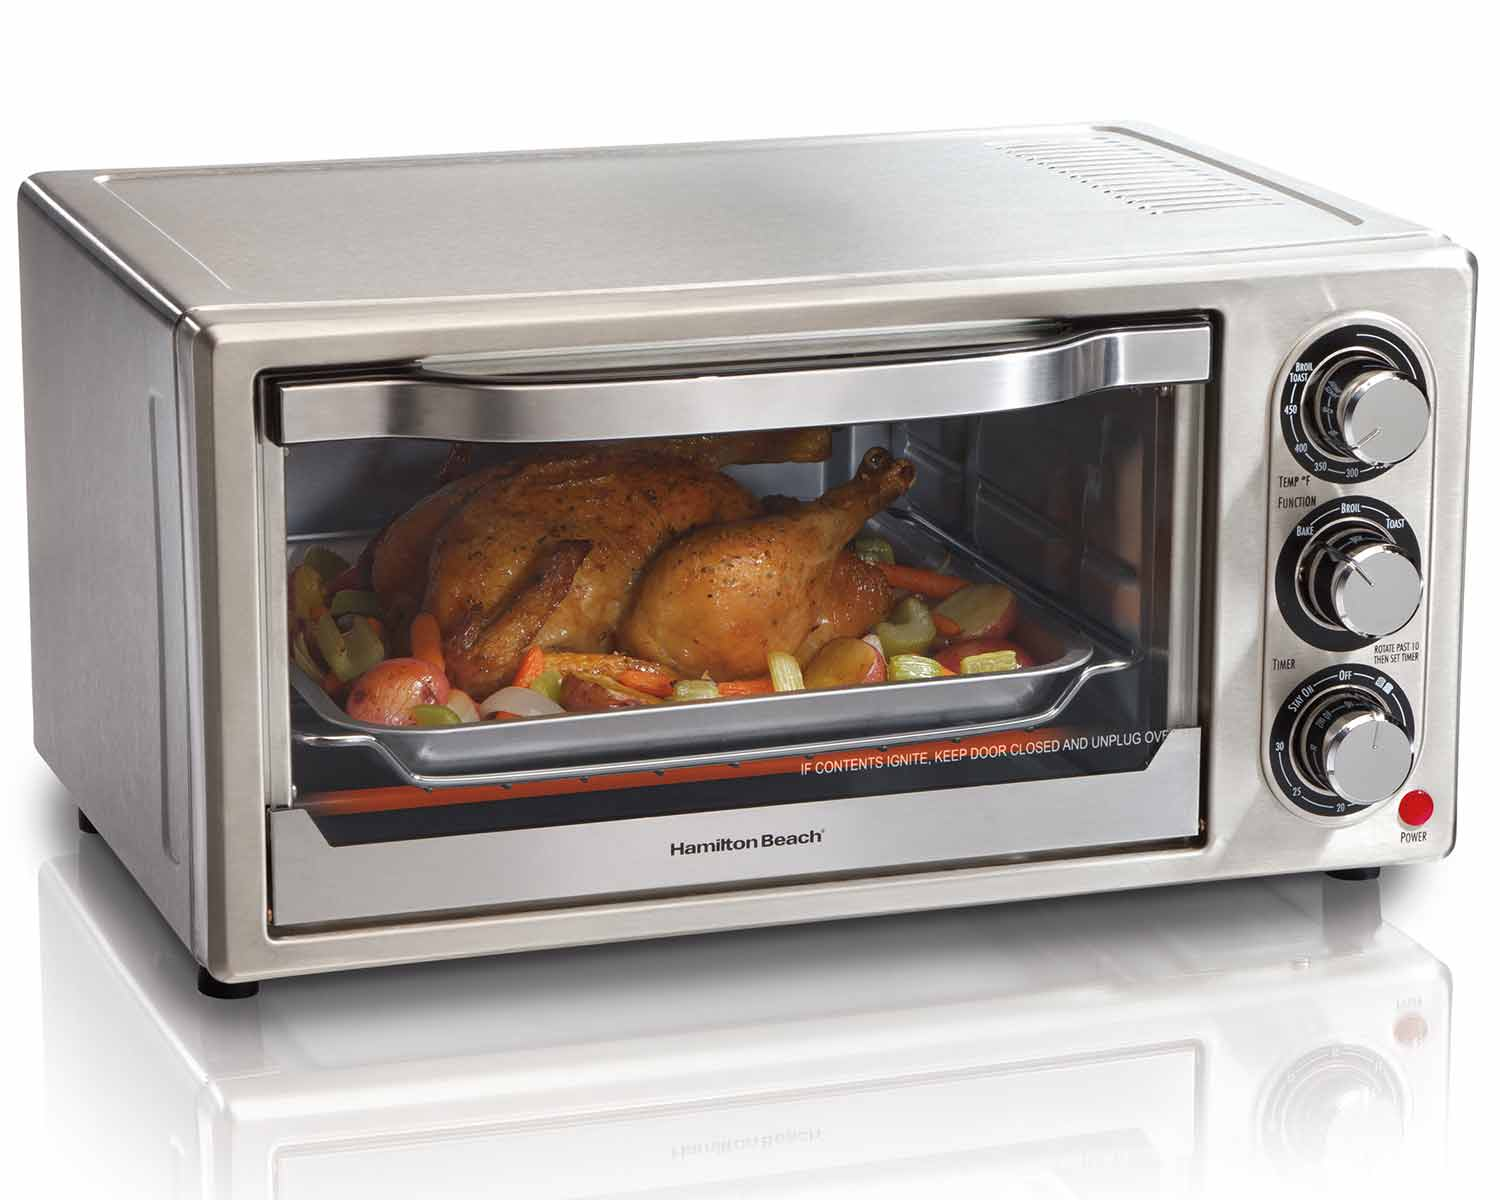 Stainless Steel 6 Slice Toaster Oven (31511C)